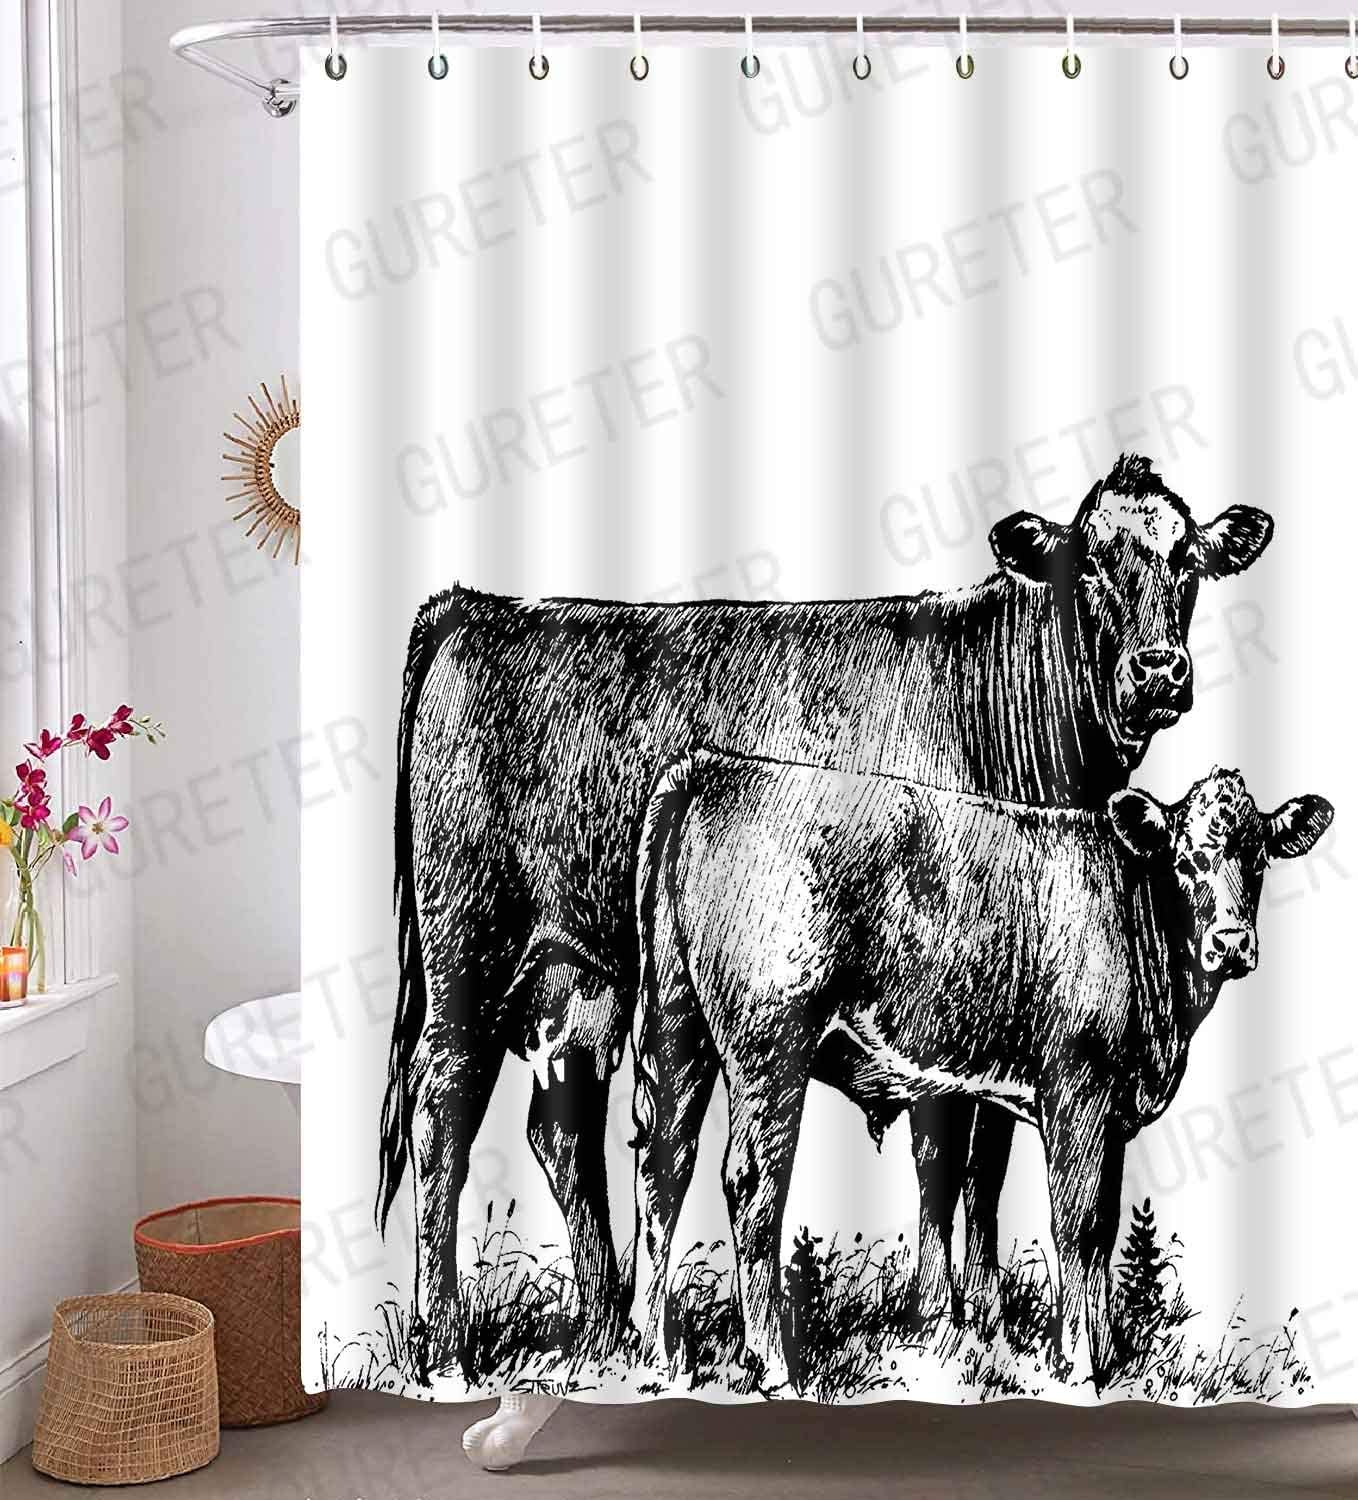 Cow Shower Curtain Farmhouse Animal Painting Art Bathroom Curtain Waterproof with 12 Hooks 72x72in YLLSGE54